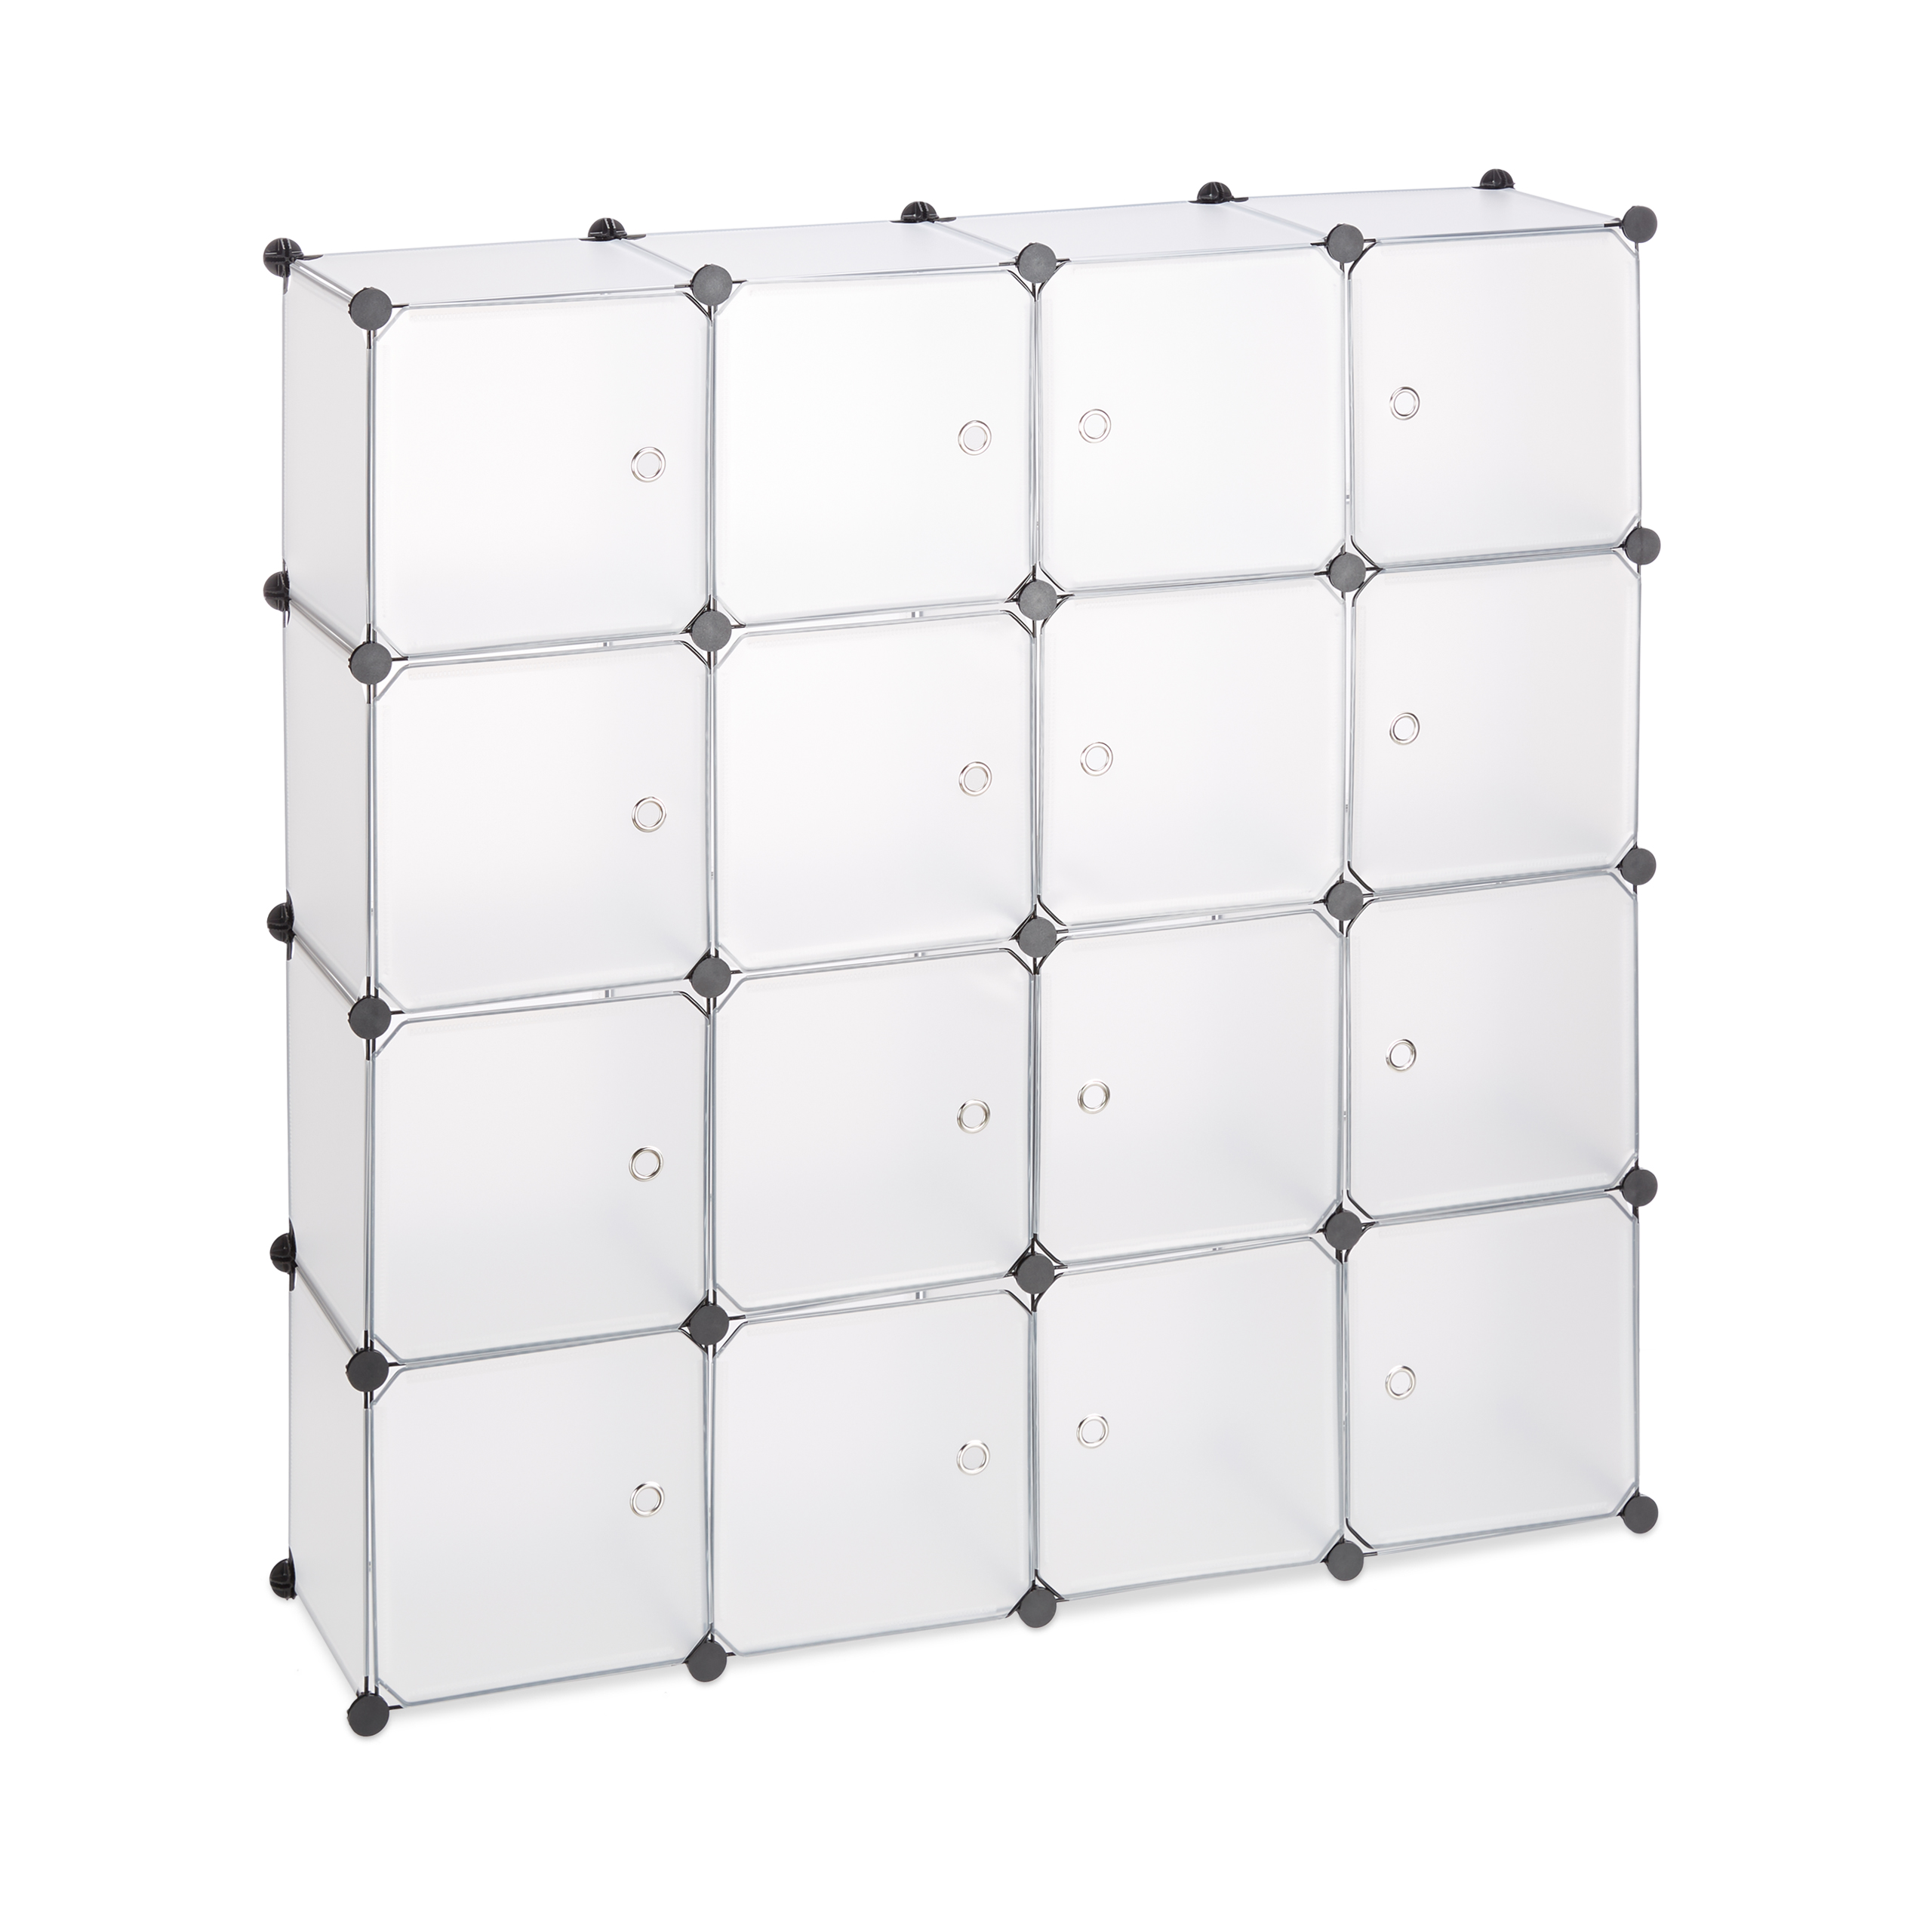 Boltless-Plastic-with-16-Compartments-Shelving-System-DIY-with-doors-Plastic-Cabinet thumbnail 11